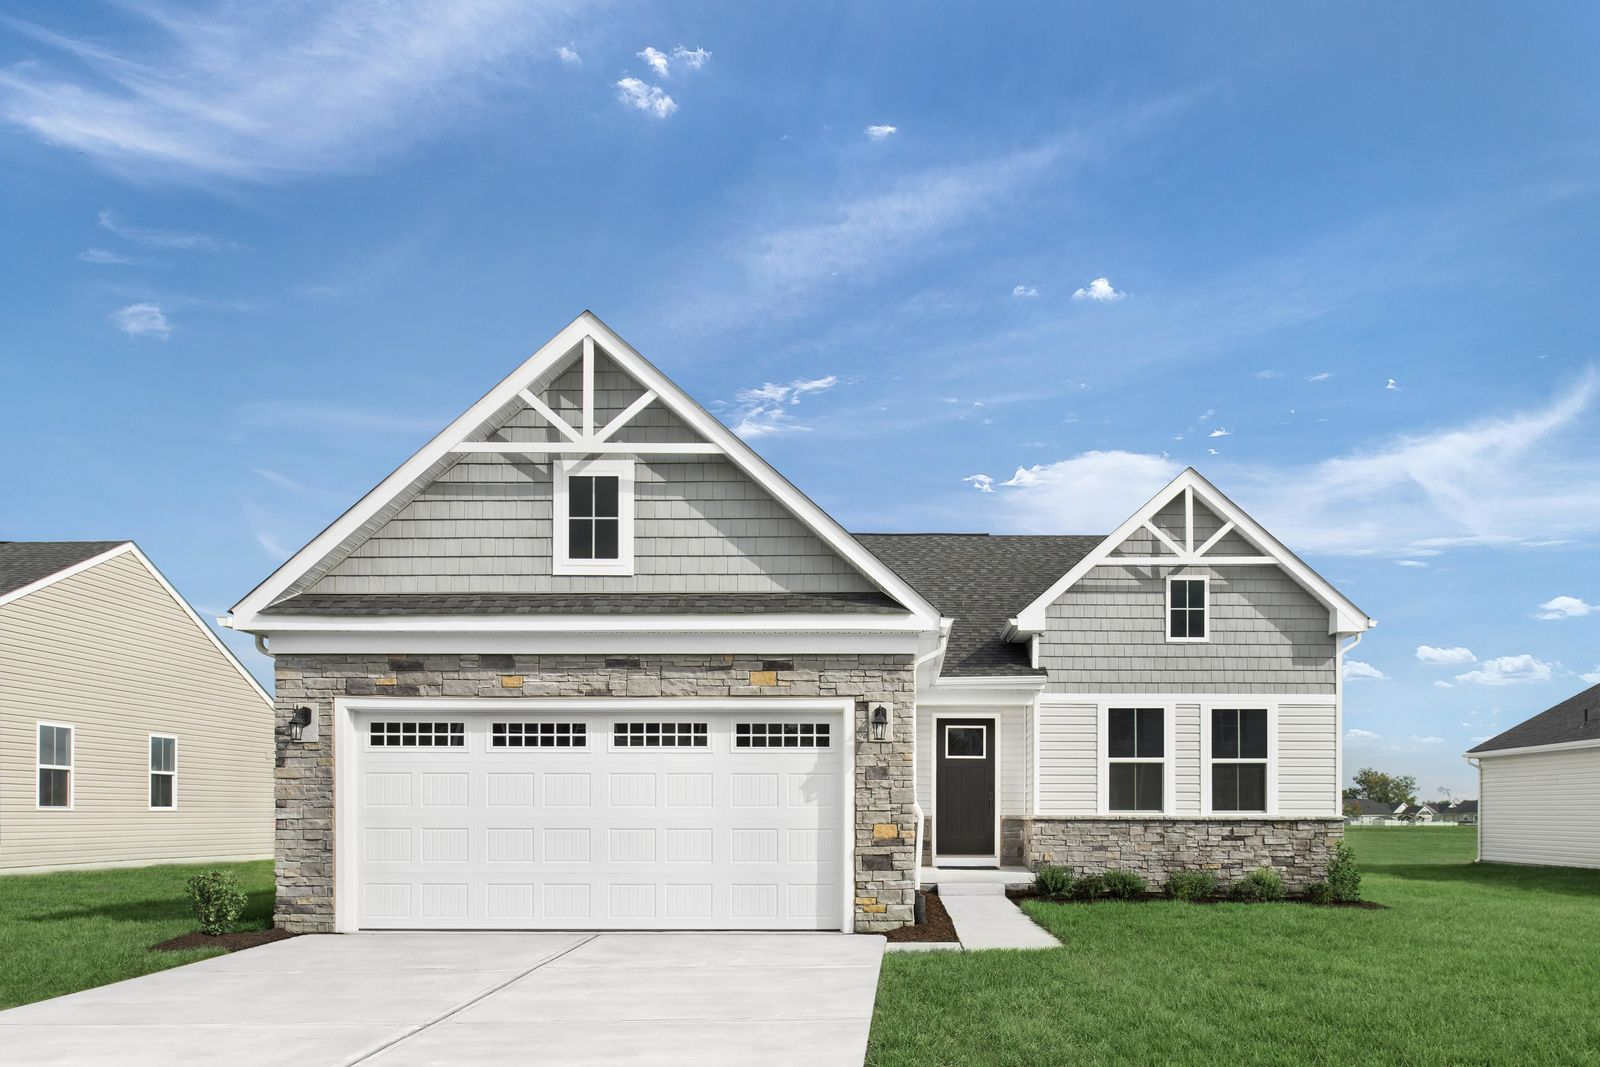 WELCOME HOME TO HIDDEN VILLAGE:Lake County's only new ranch home community with available lawn/snow care—serene wooded and pond views. Convenient to Routes 2, 20, and I-90.Click here to learn more.